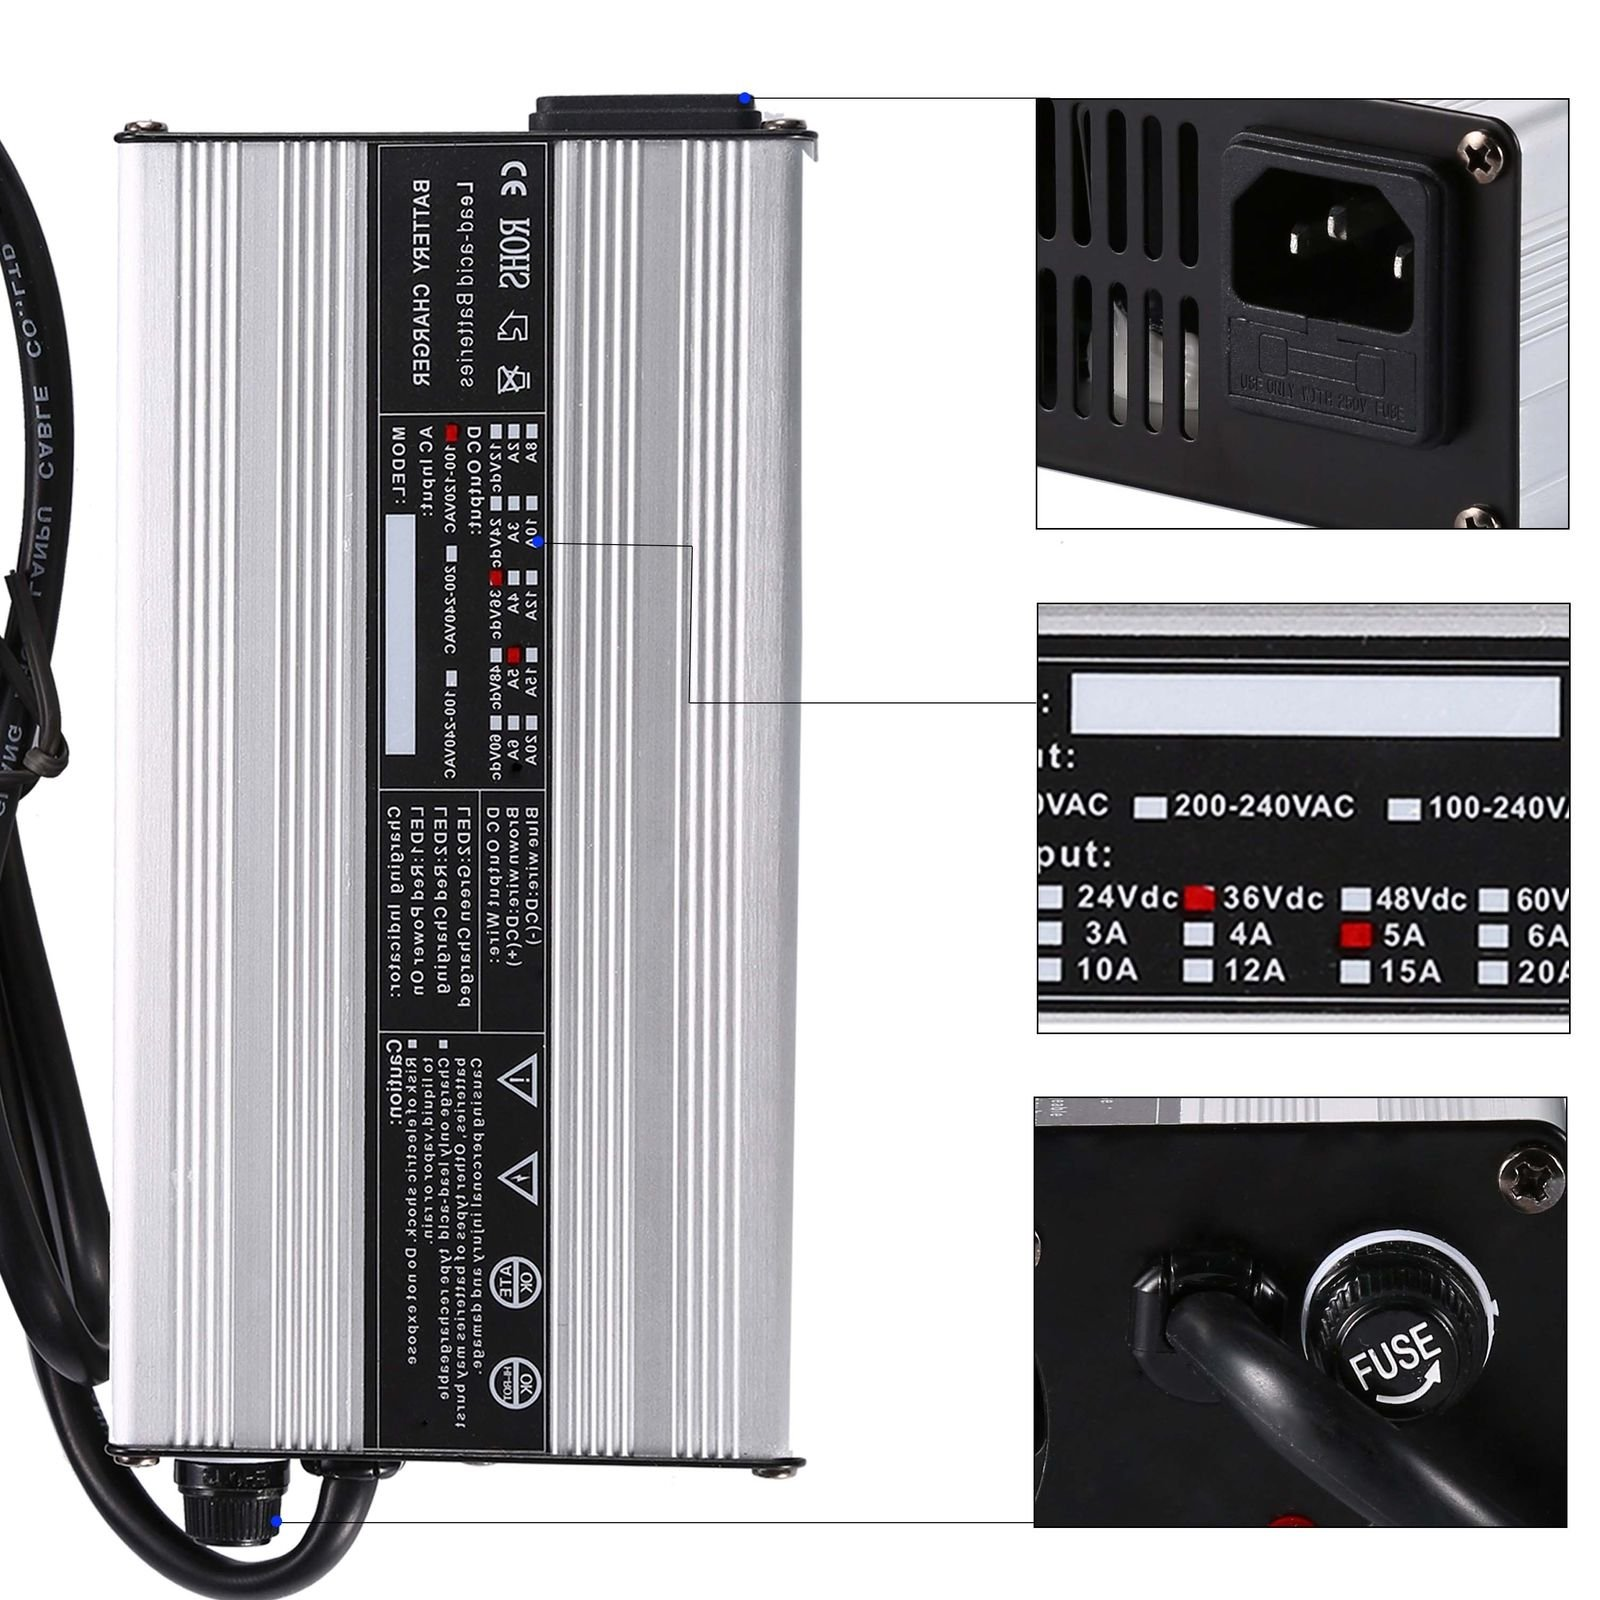 36V Powerwise Golf Cart Battery Charger 36 Volt For EZ-GO TXT Medalist D Style by JEM&JULES (Image #2)